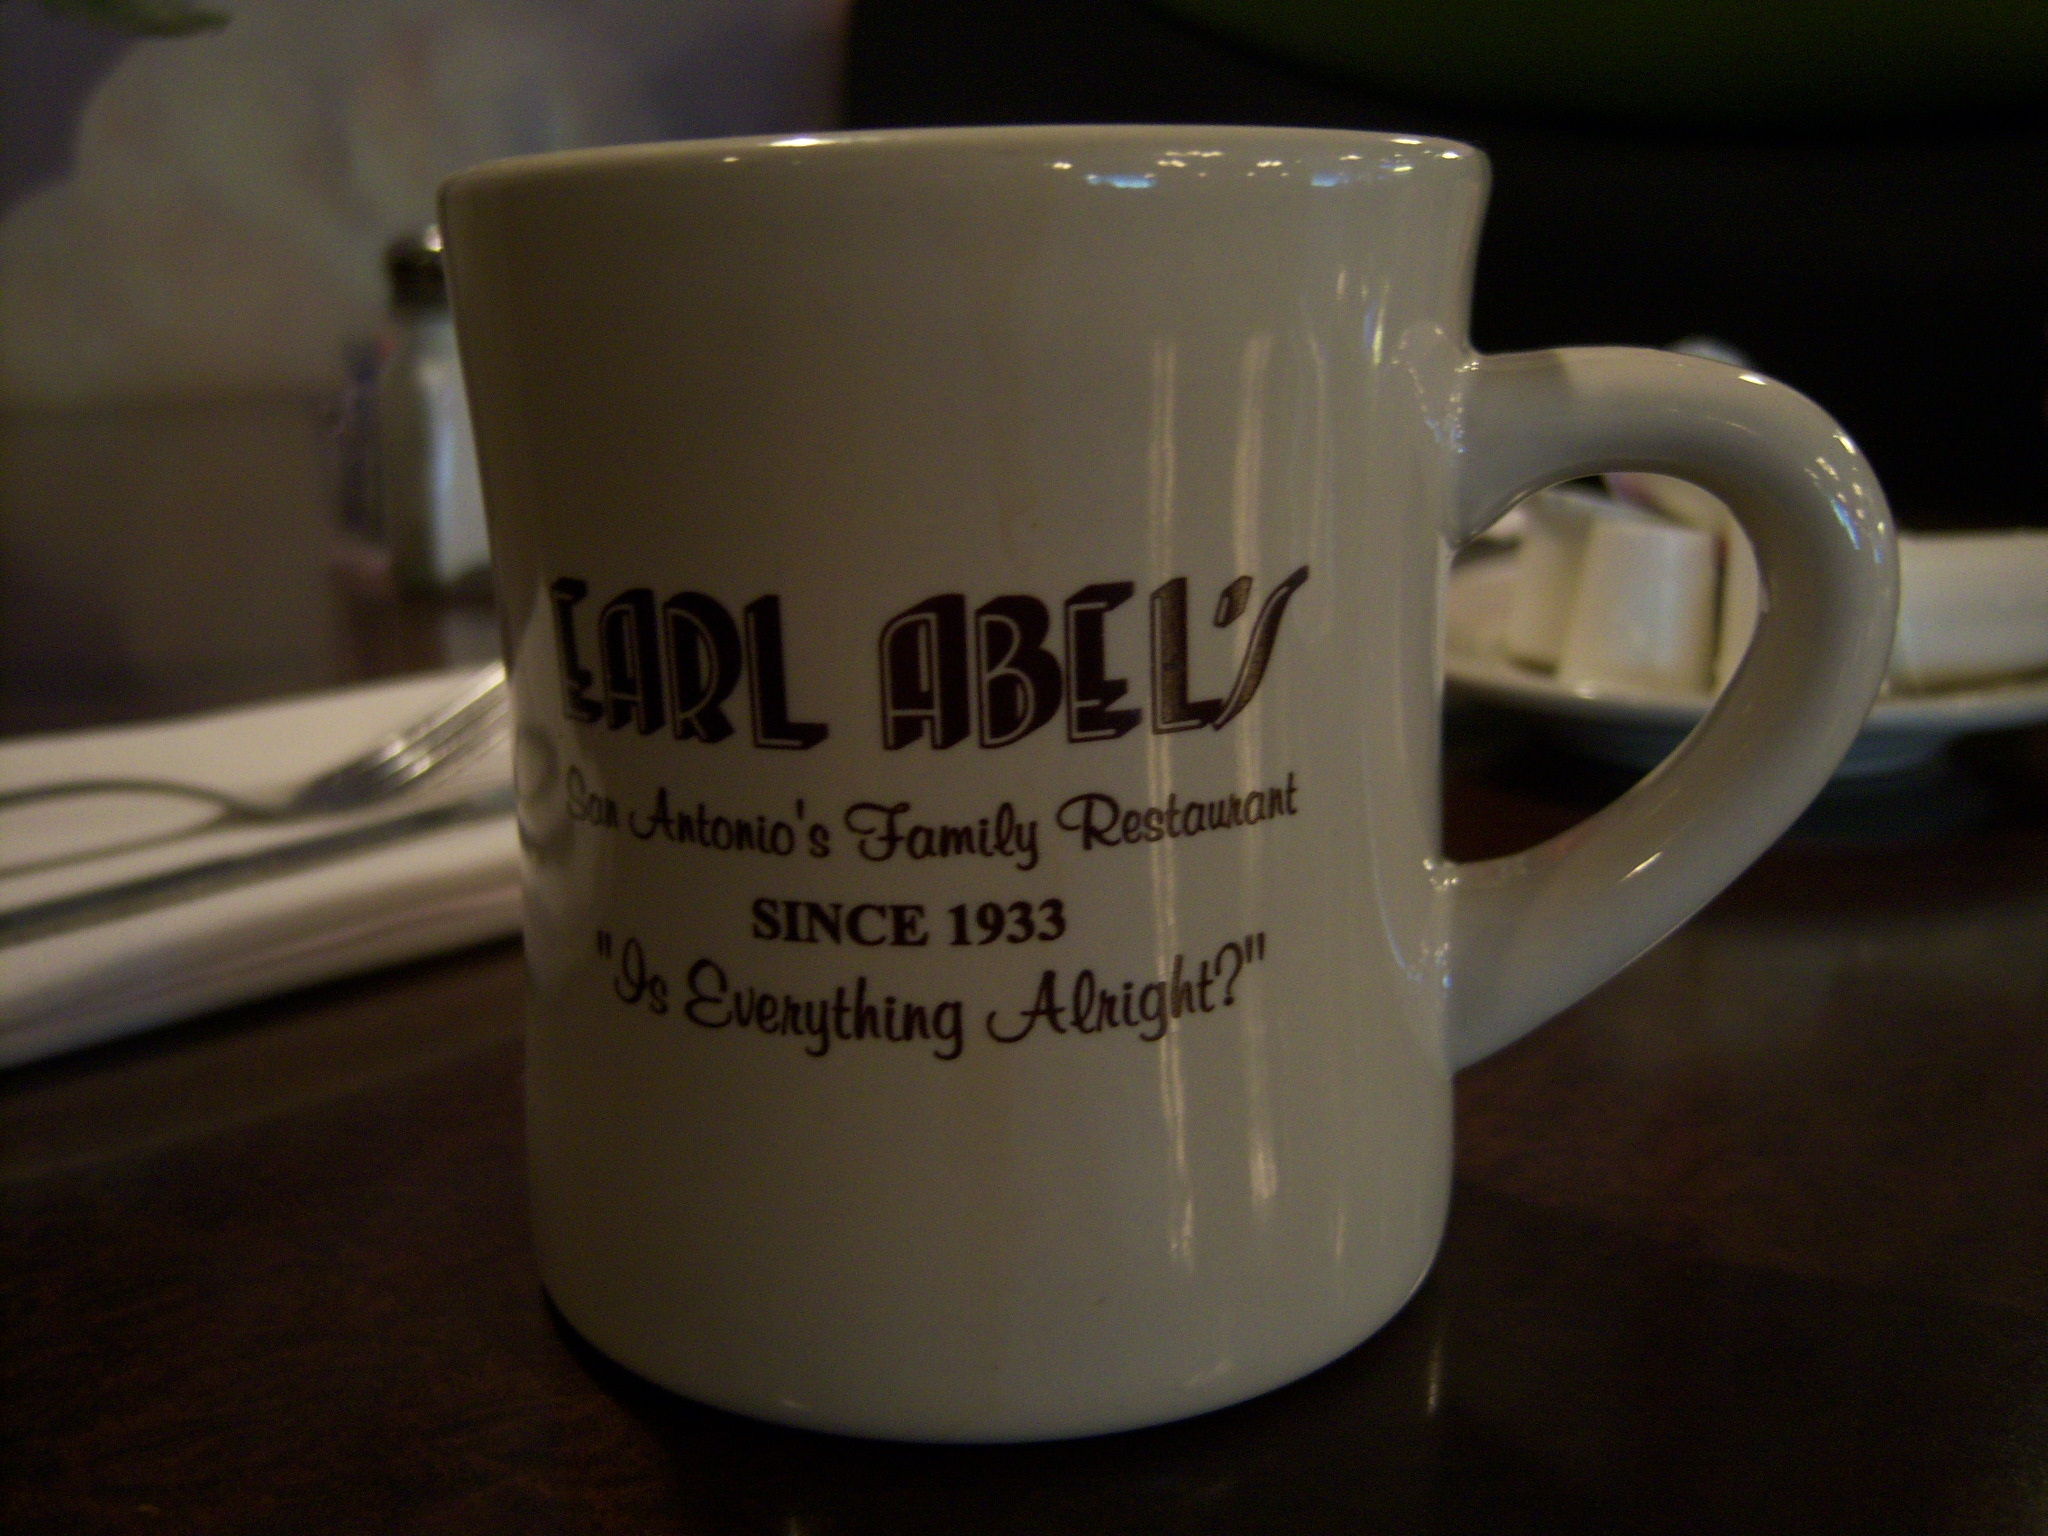 Coffee cup family restaurant - Frankly I M Still Not Over Earl Abel S Moving From Its Long Time Location On Broadway At Hildebrand To 1201 Austin Highway But A Slice Of Pie And A Cup Of